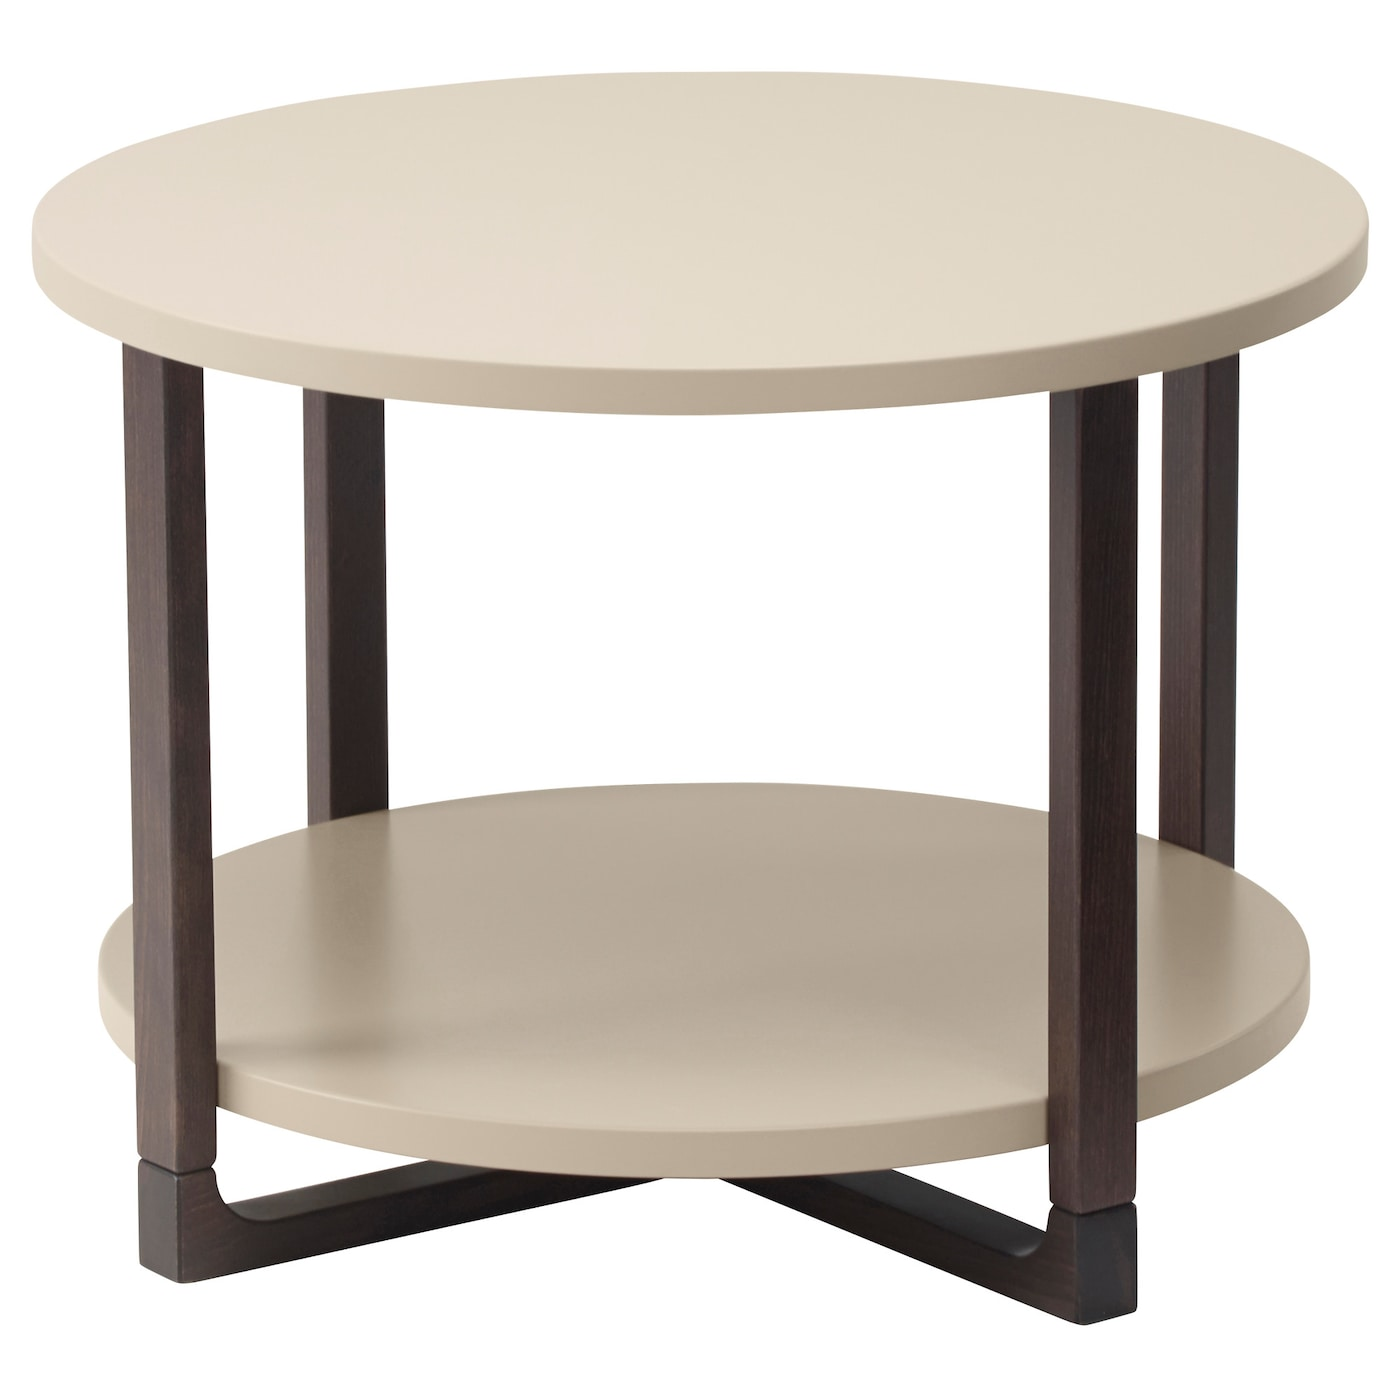 Rissna side table beige 60 cm ikea - Ikea table basse verre ...